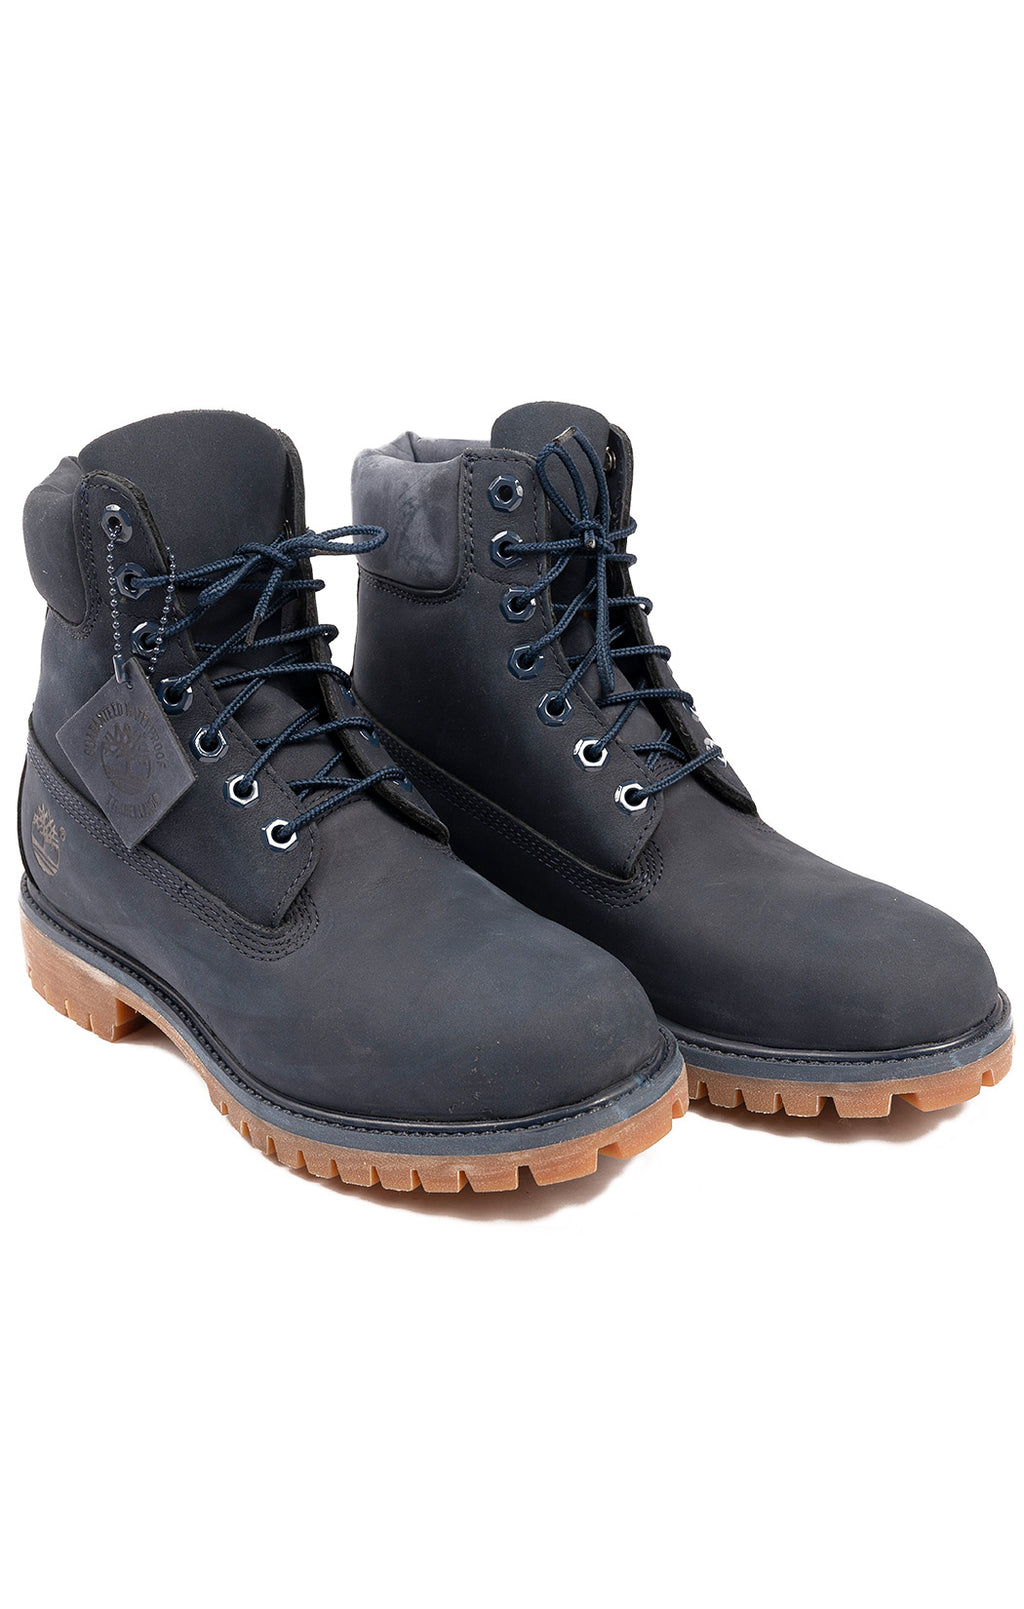 Navy suede lace up boots with rubber sole